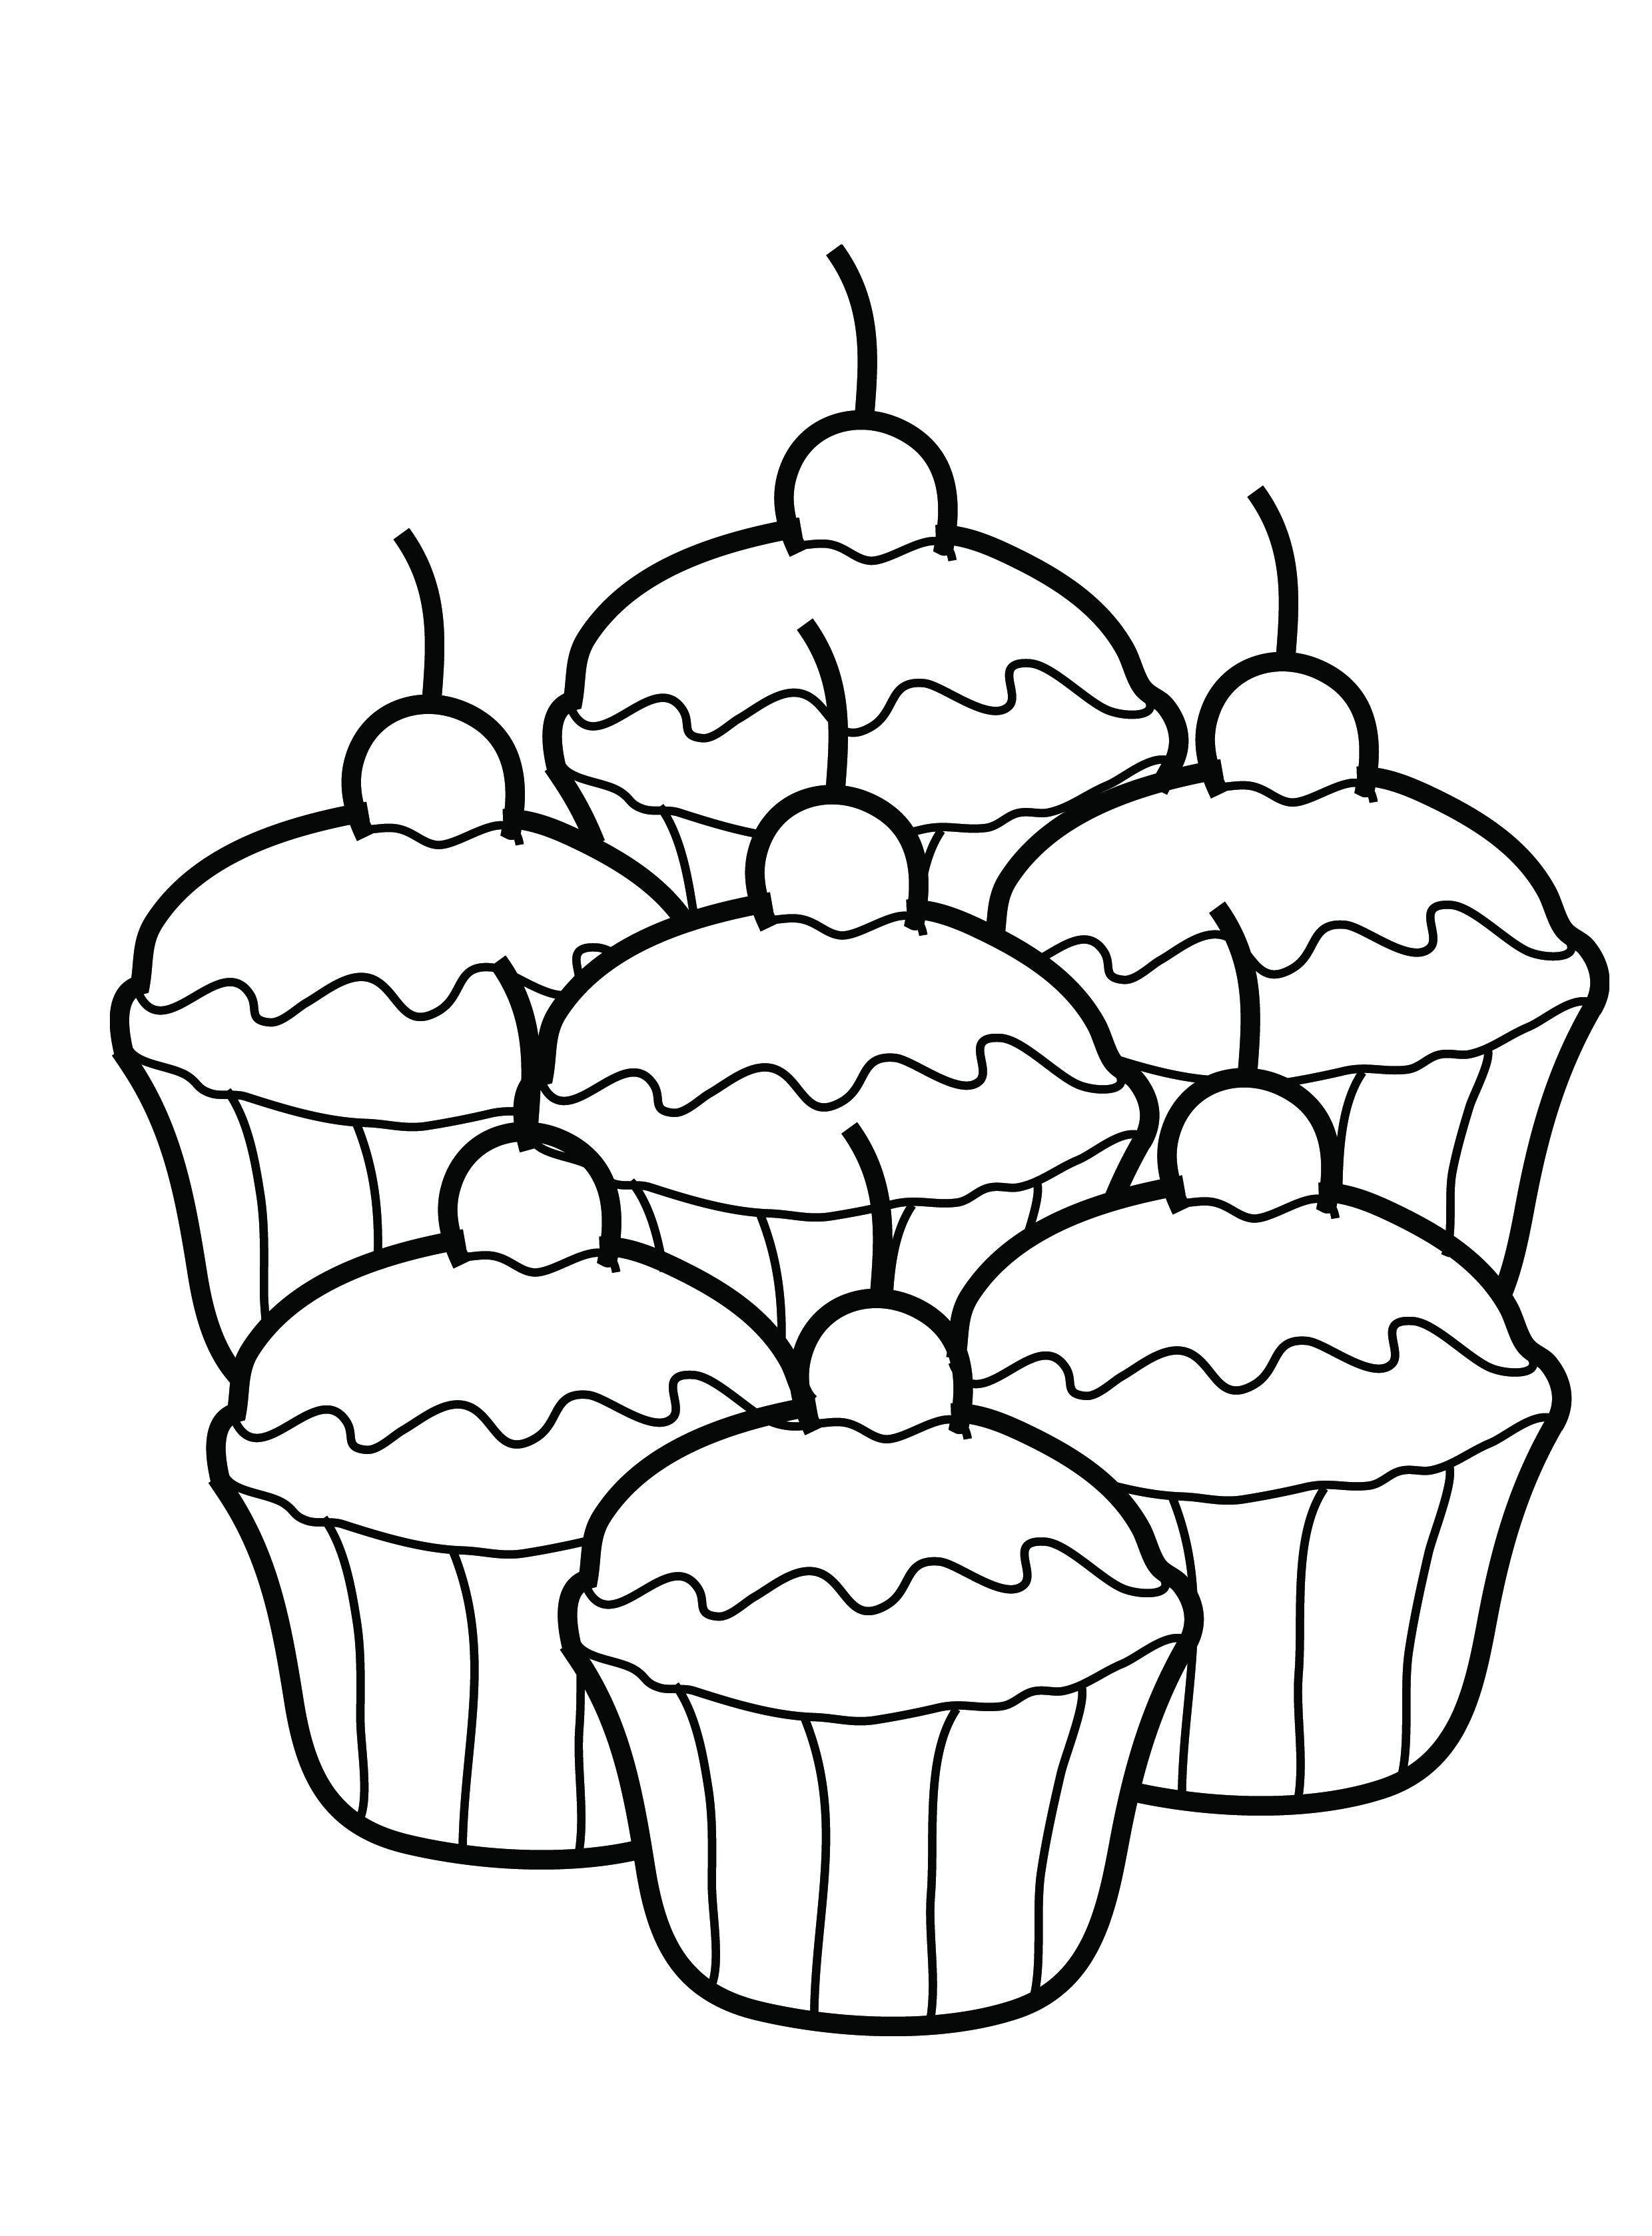 cupcake-coloriage-basic5